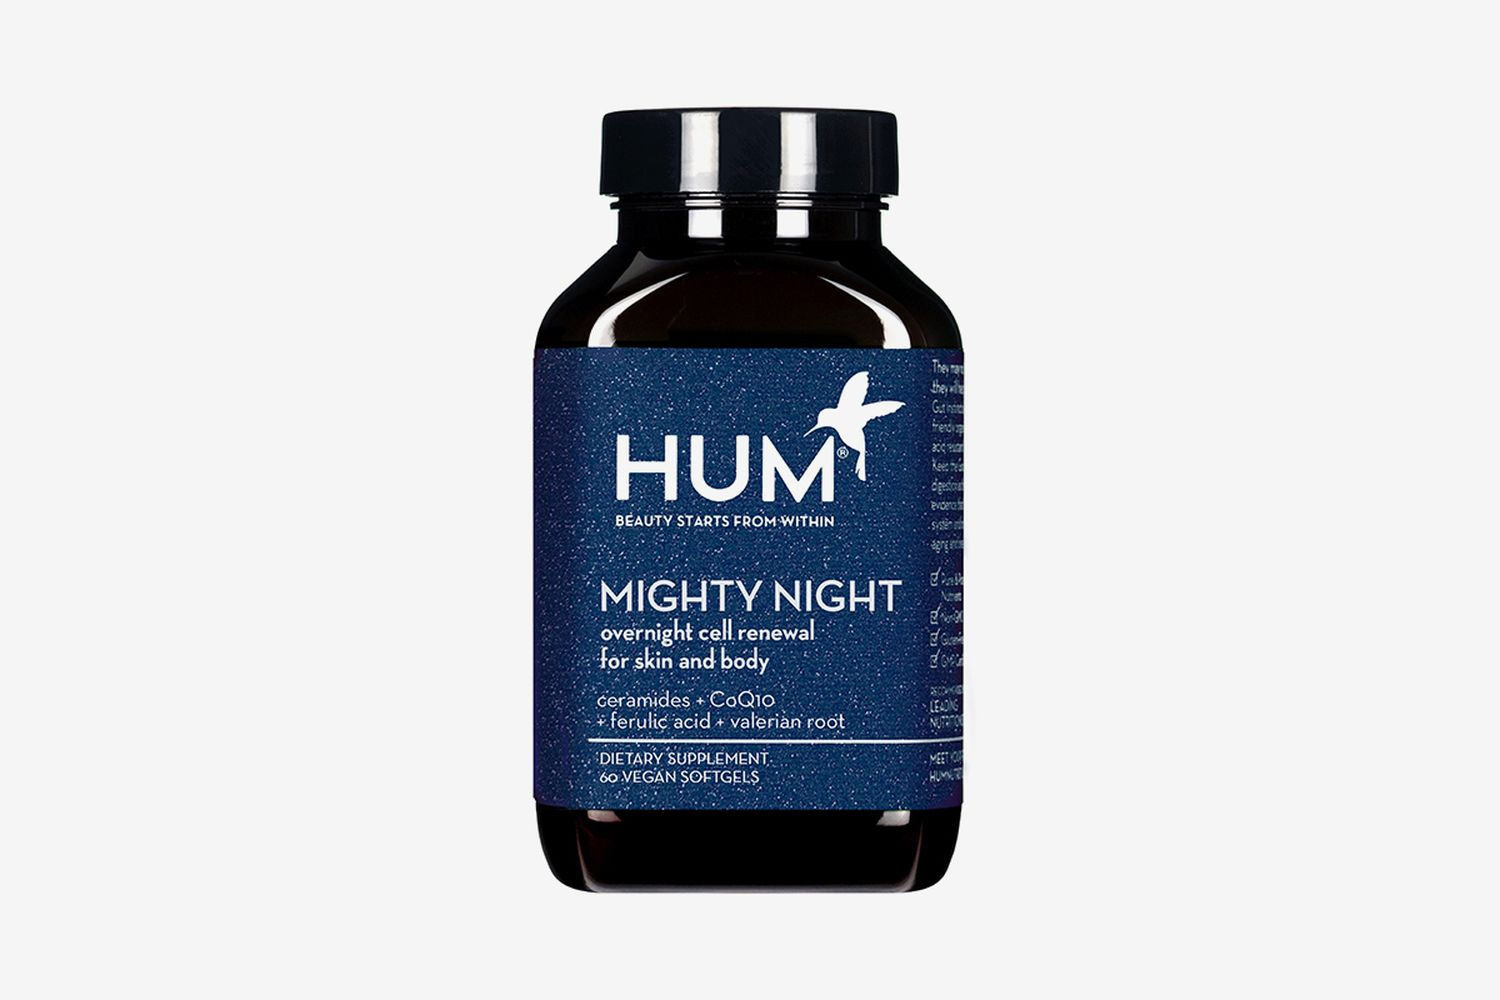 Mighty Night Overnight Renewal Dietary Supplement